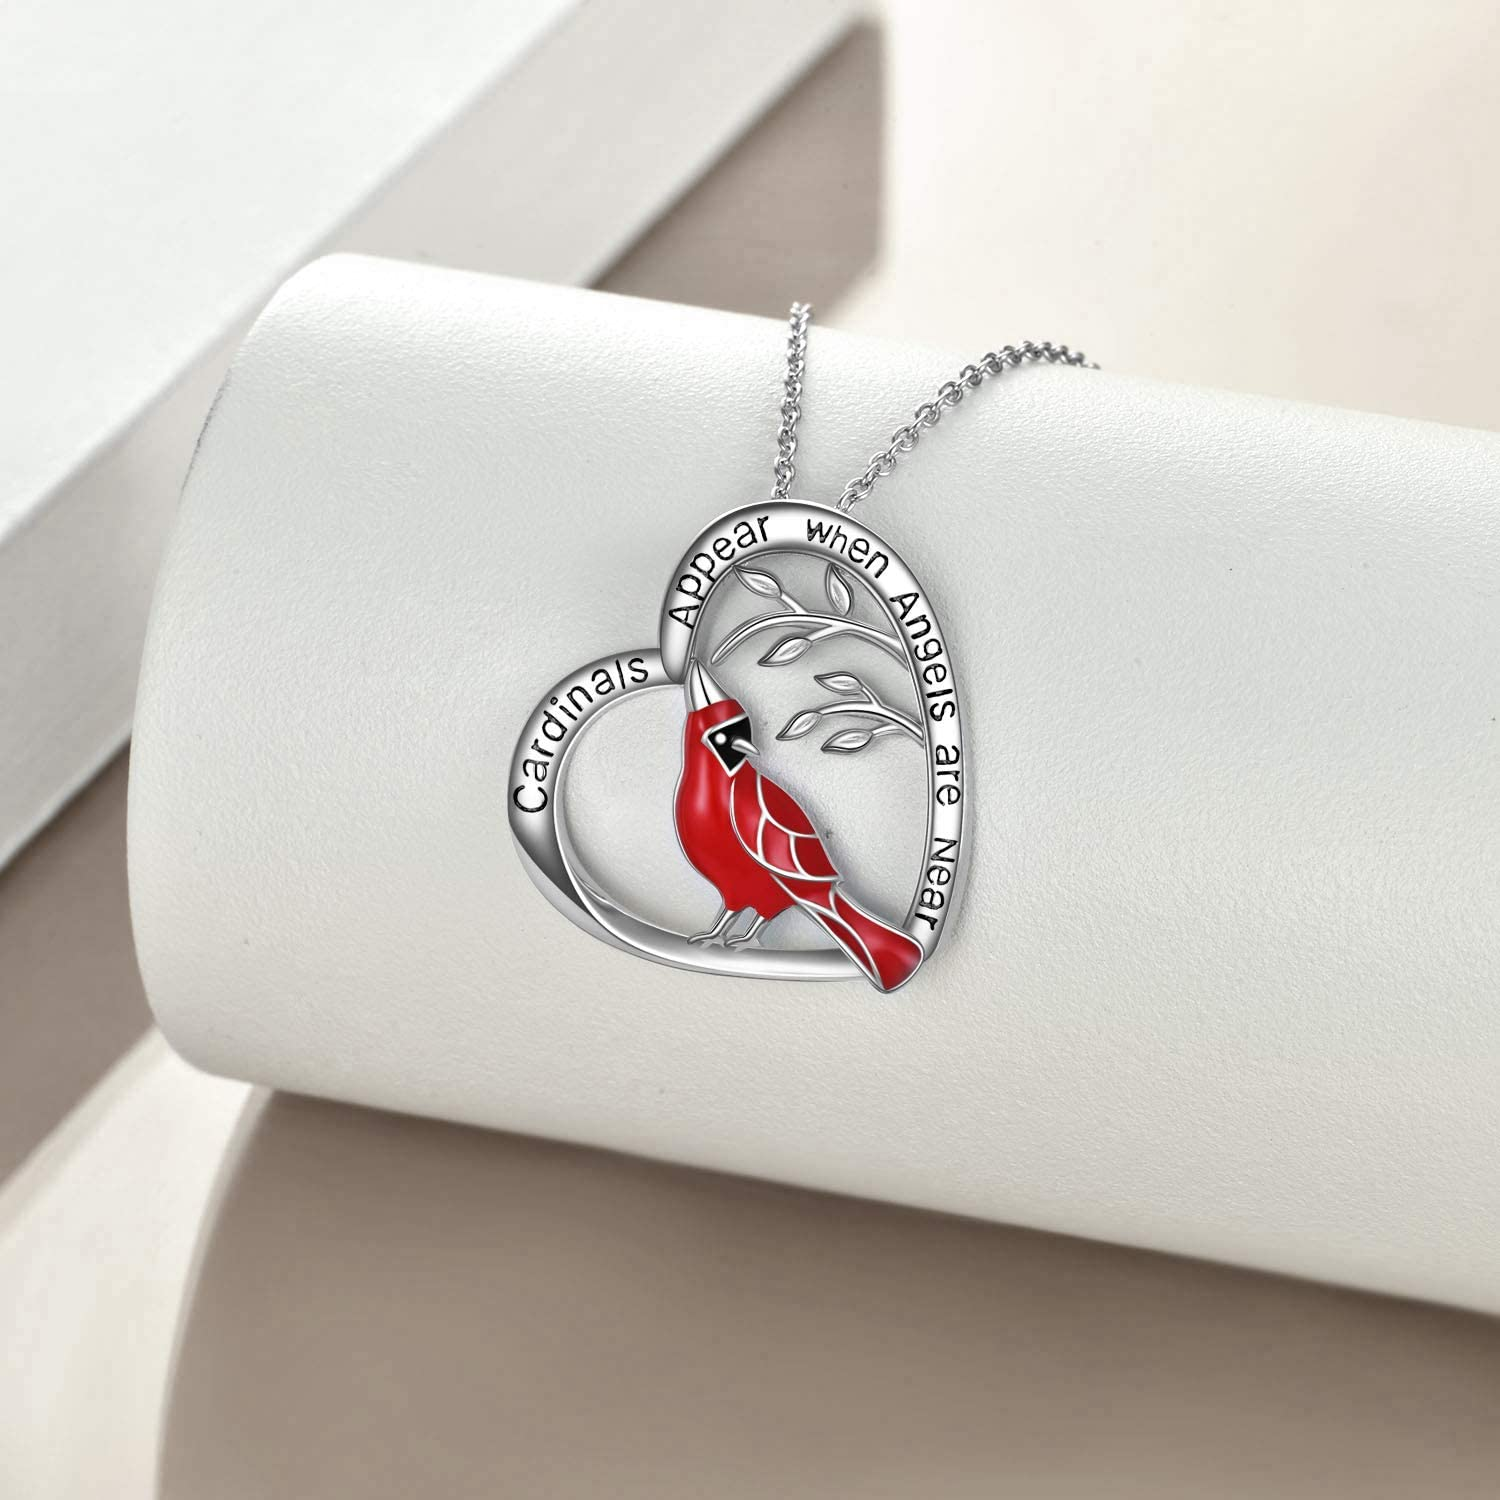 Cardinal Heart Pendant Necklace Sterling Silver Gifts for Women